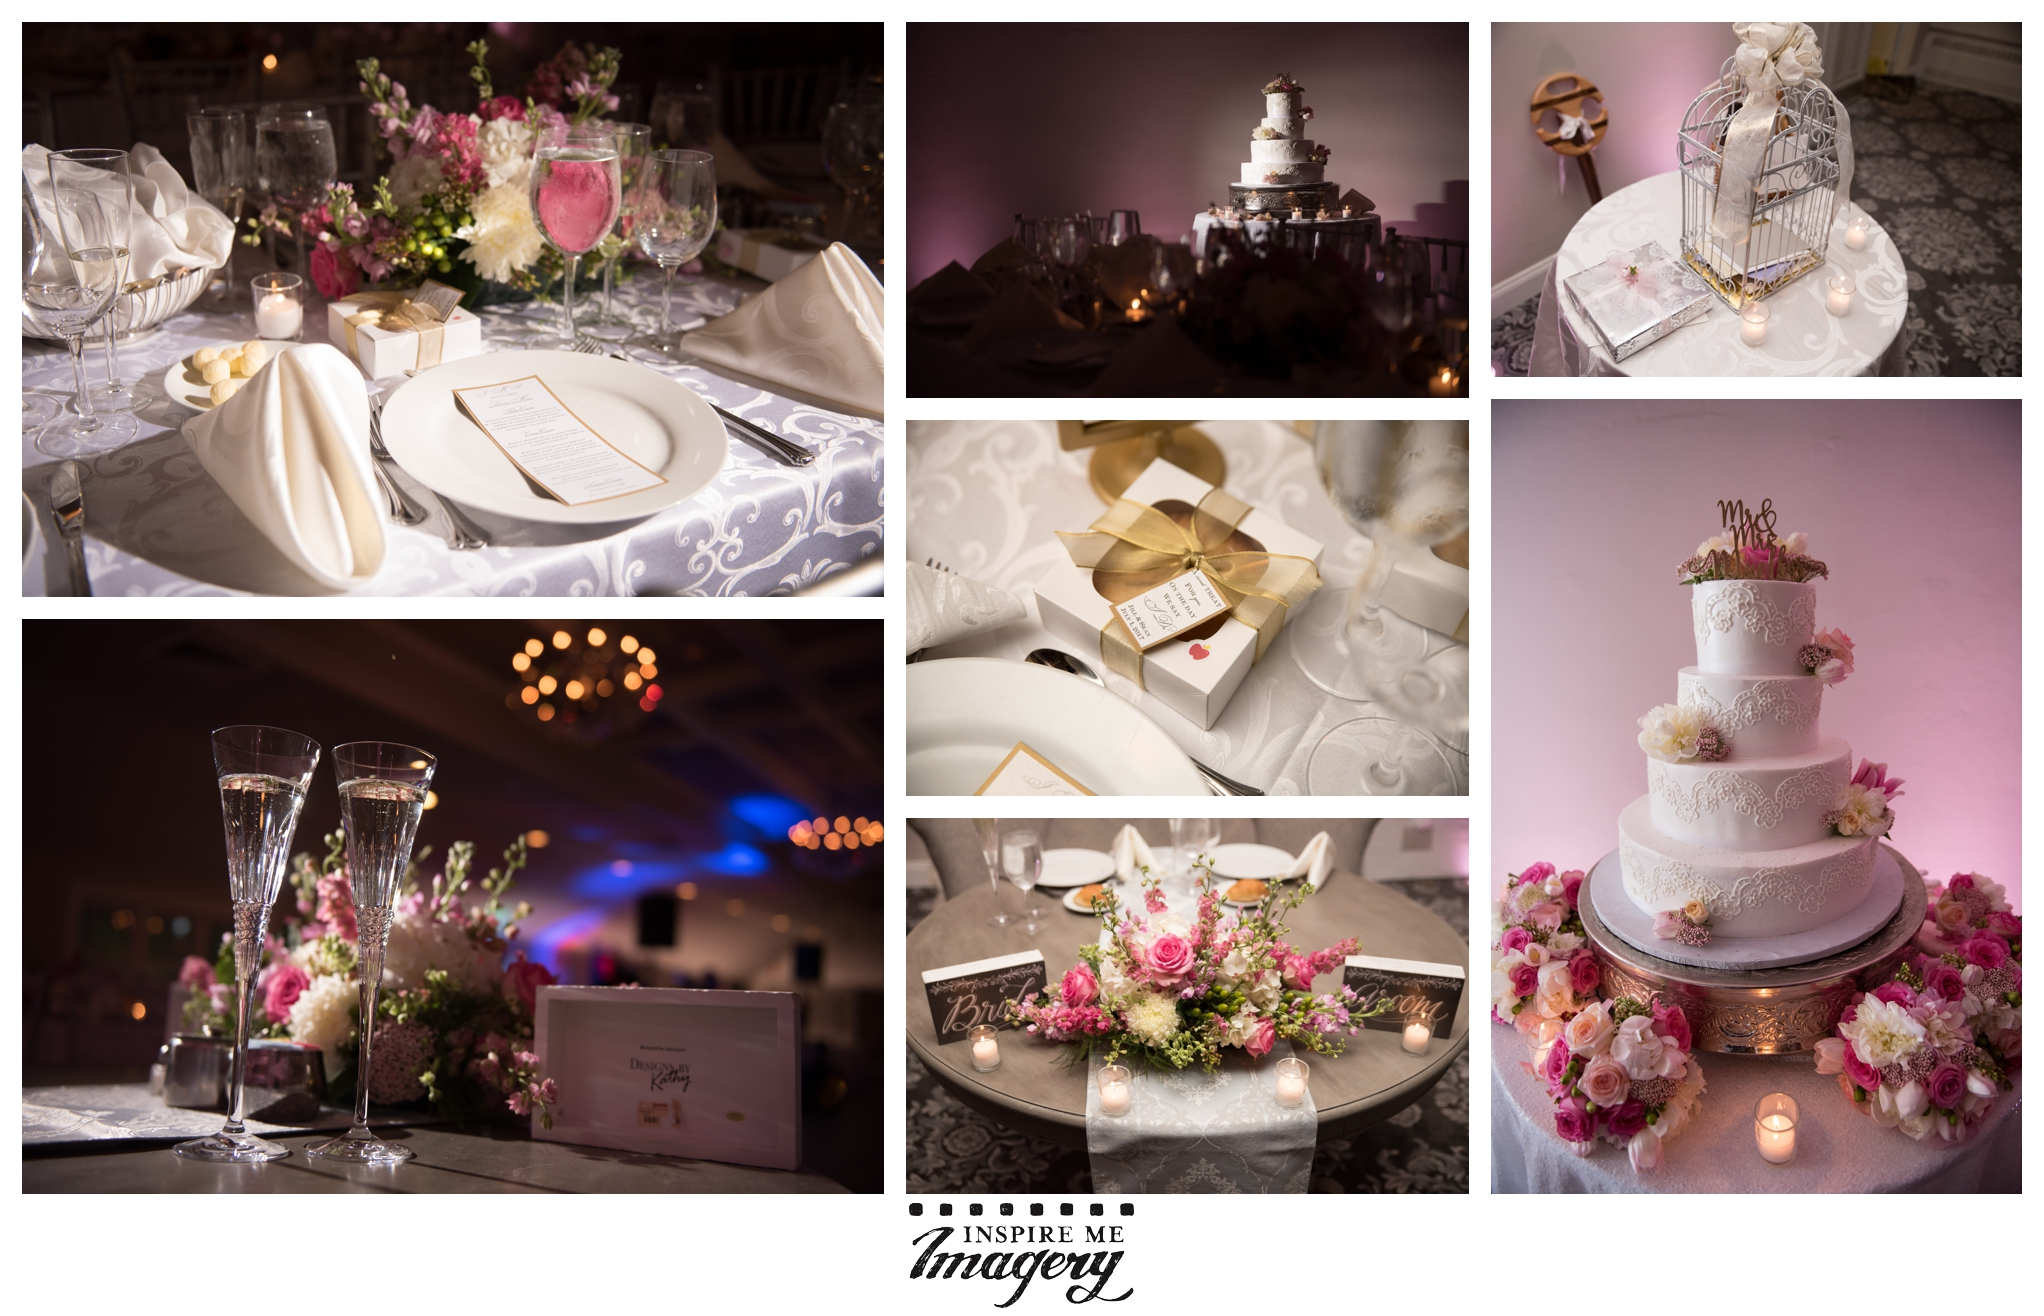 We love the soft pink tones of the florals for this wedding. The whole day had such a classic, romantic vibe to it.